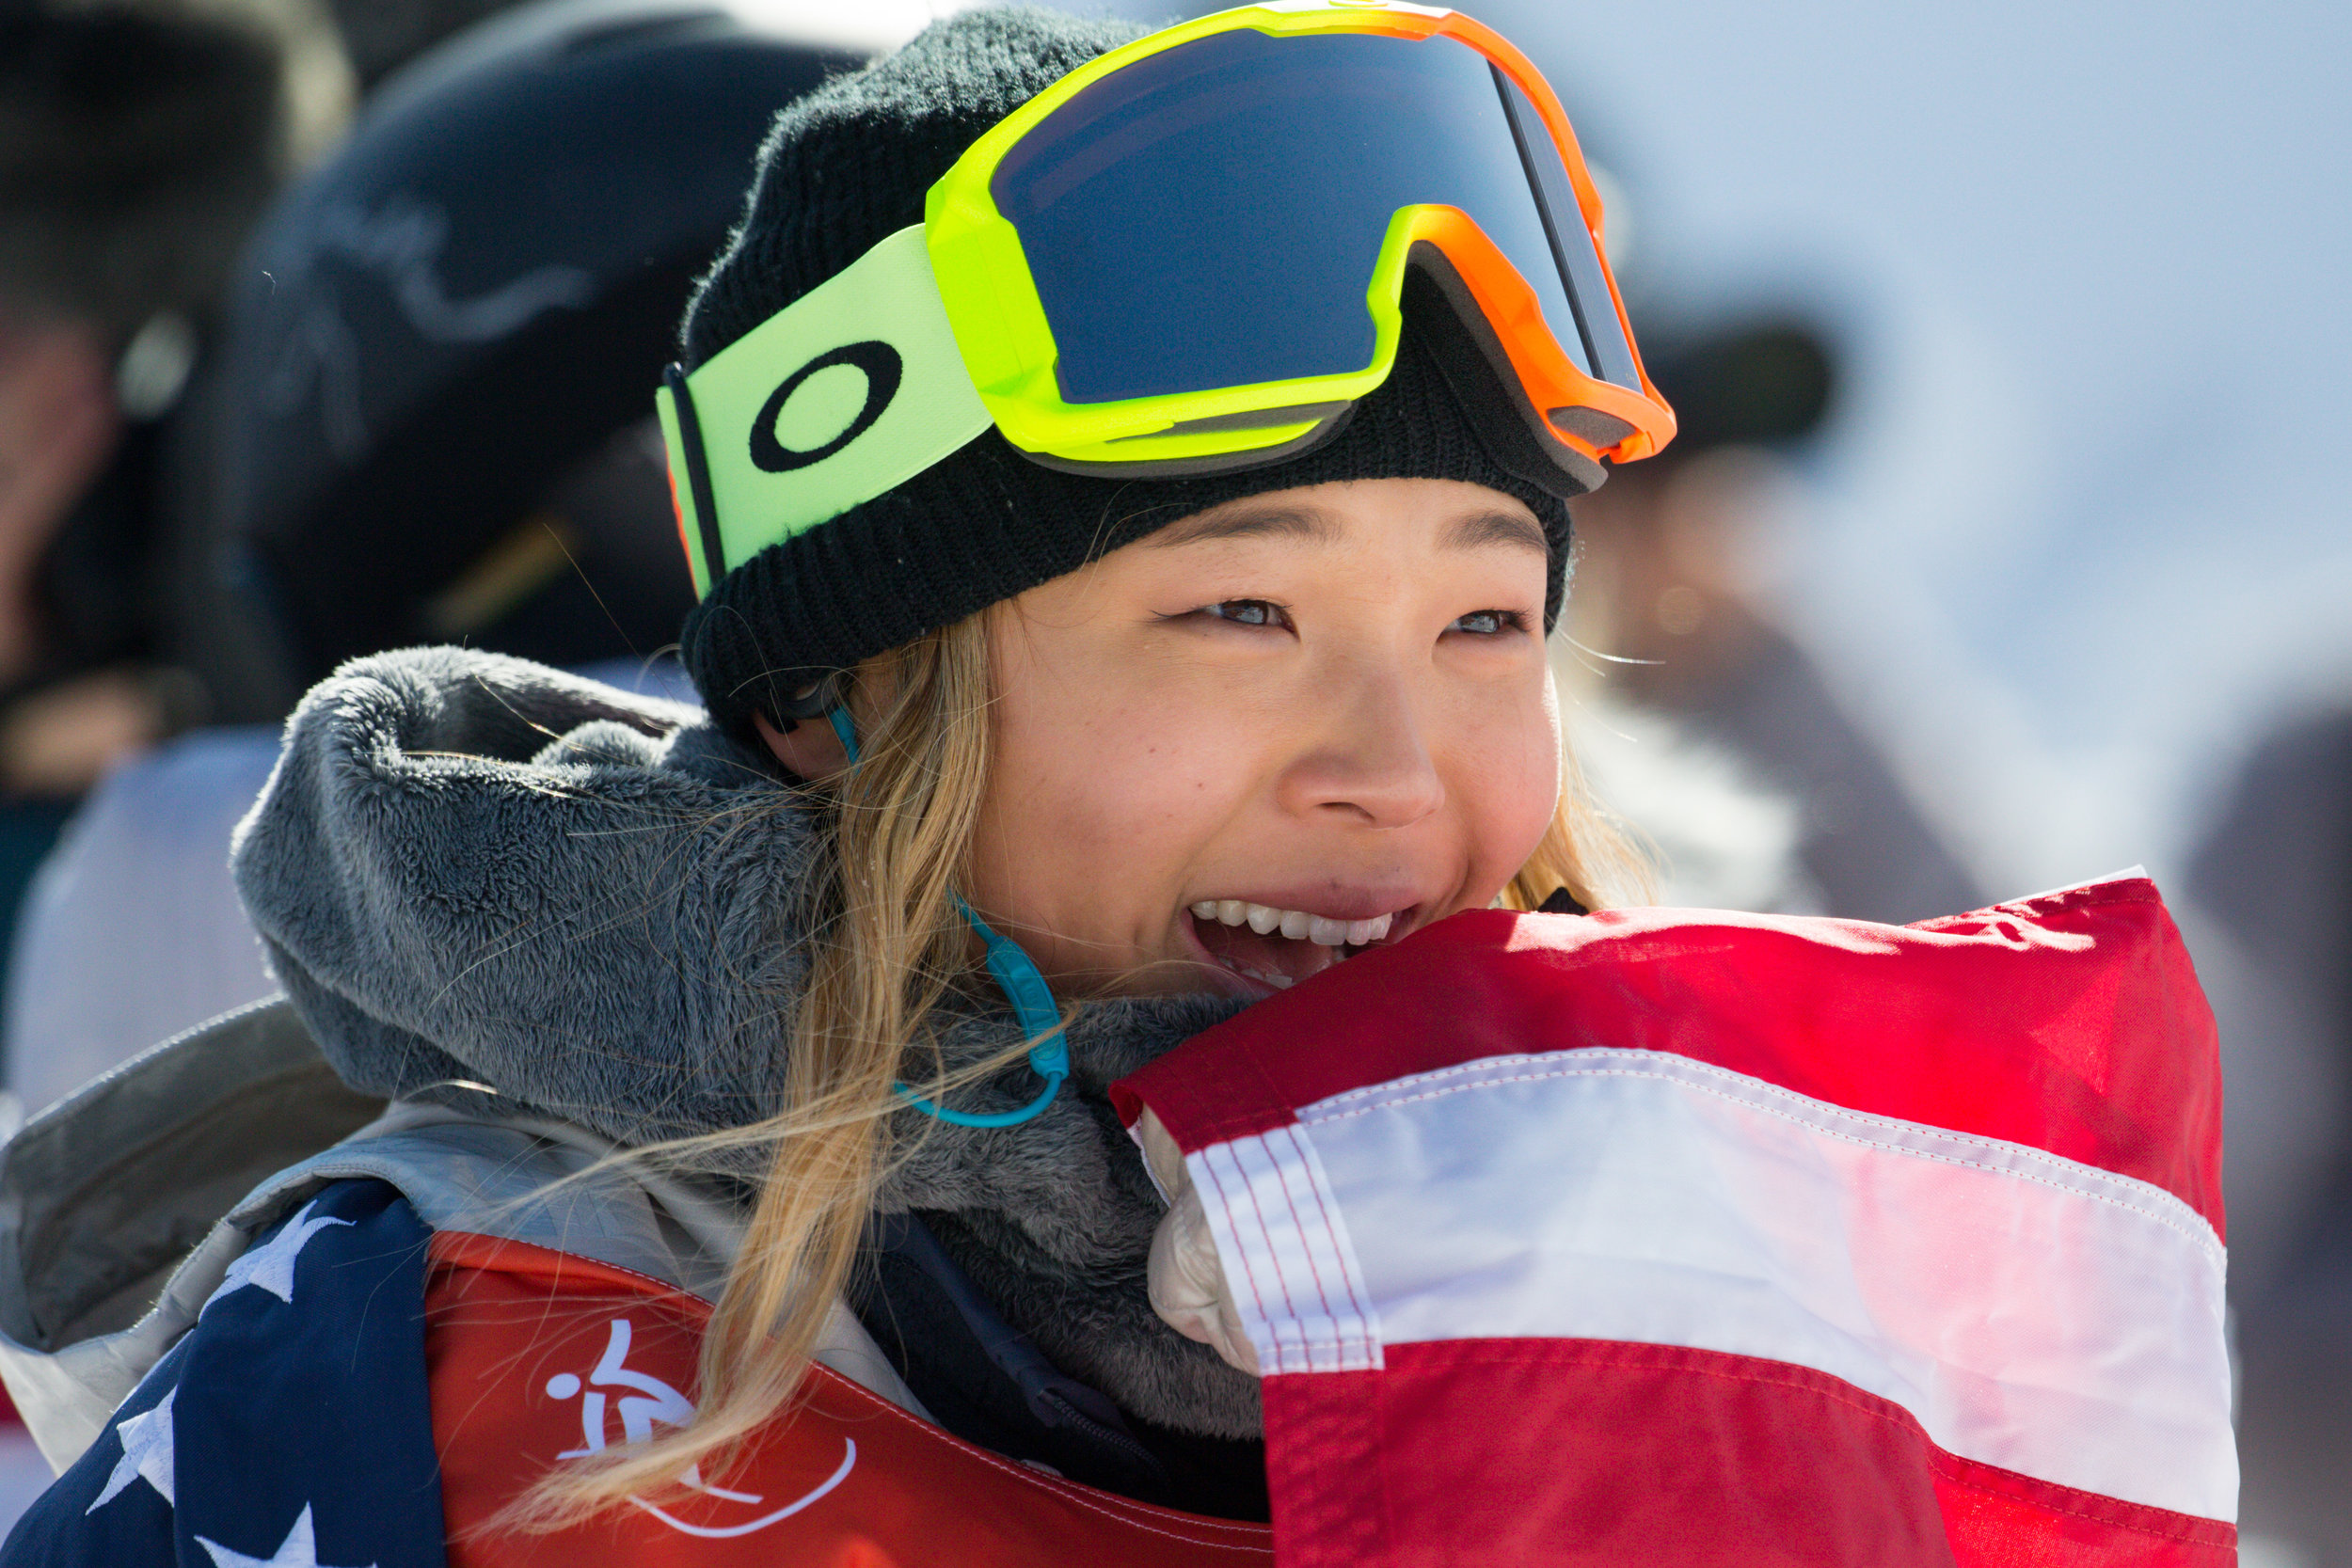 Chloe Kim of the United States celebrates after winning gold in the Ladies' Halfpipe finals at the 2018 Pyeongchang Winter Olympics at Phoenix Snow Park in Pyeongchang, South Korea, on February 13, 2018. Kim took gold in the event with a score of 98.25 . Photo by Matthew Healey/UPI